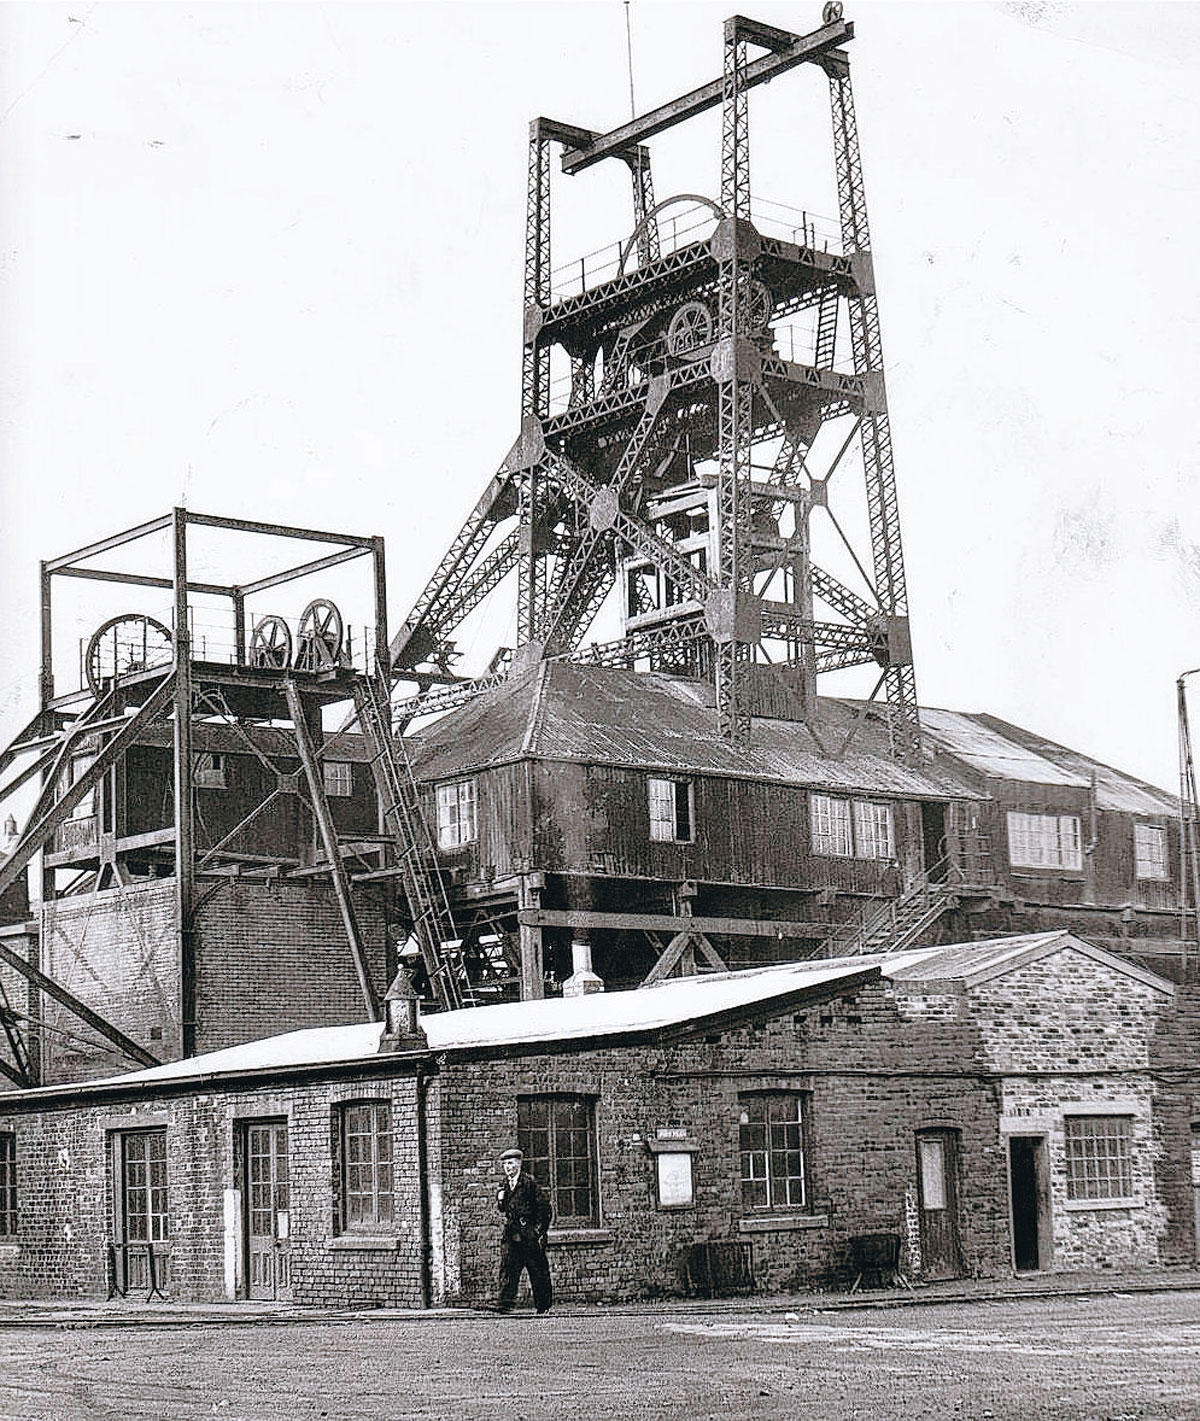 CLOSING VIEW: North Skelton ironstone mine on the day it closed, January 17, 1964